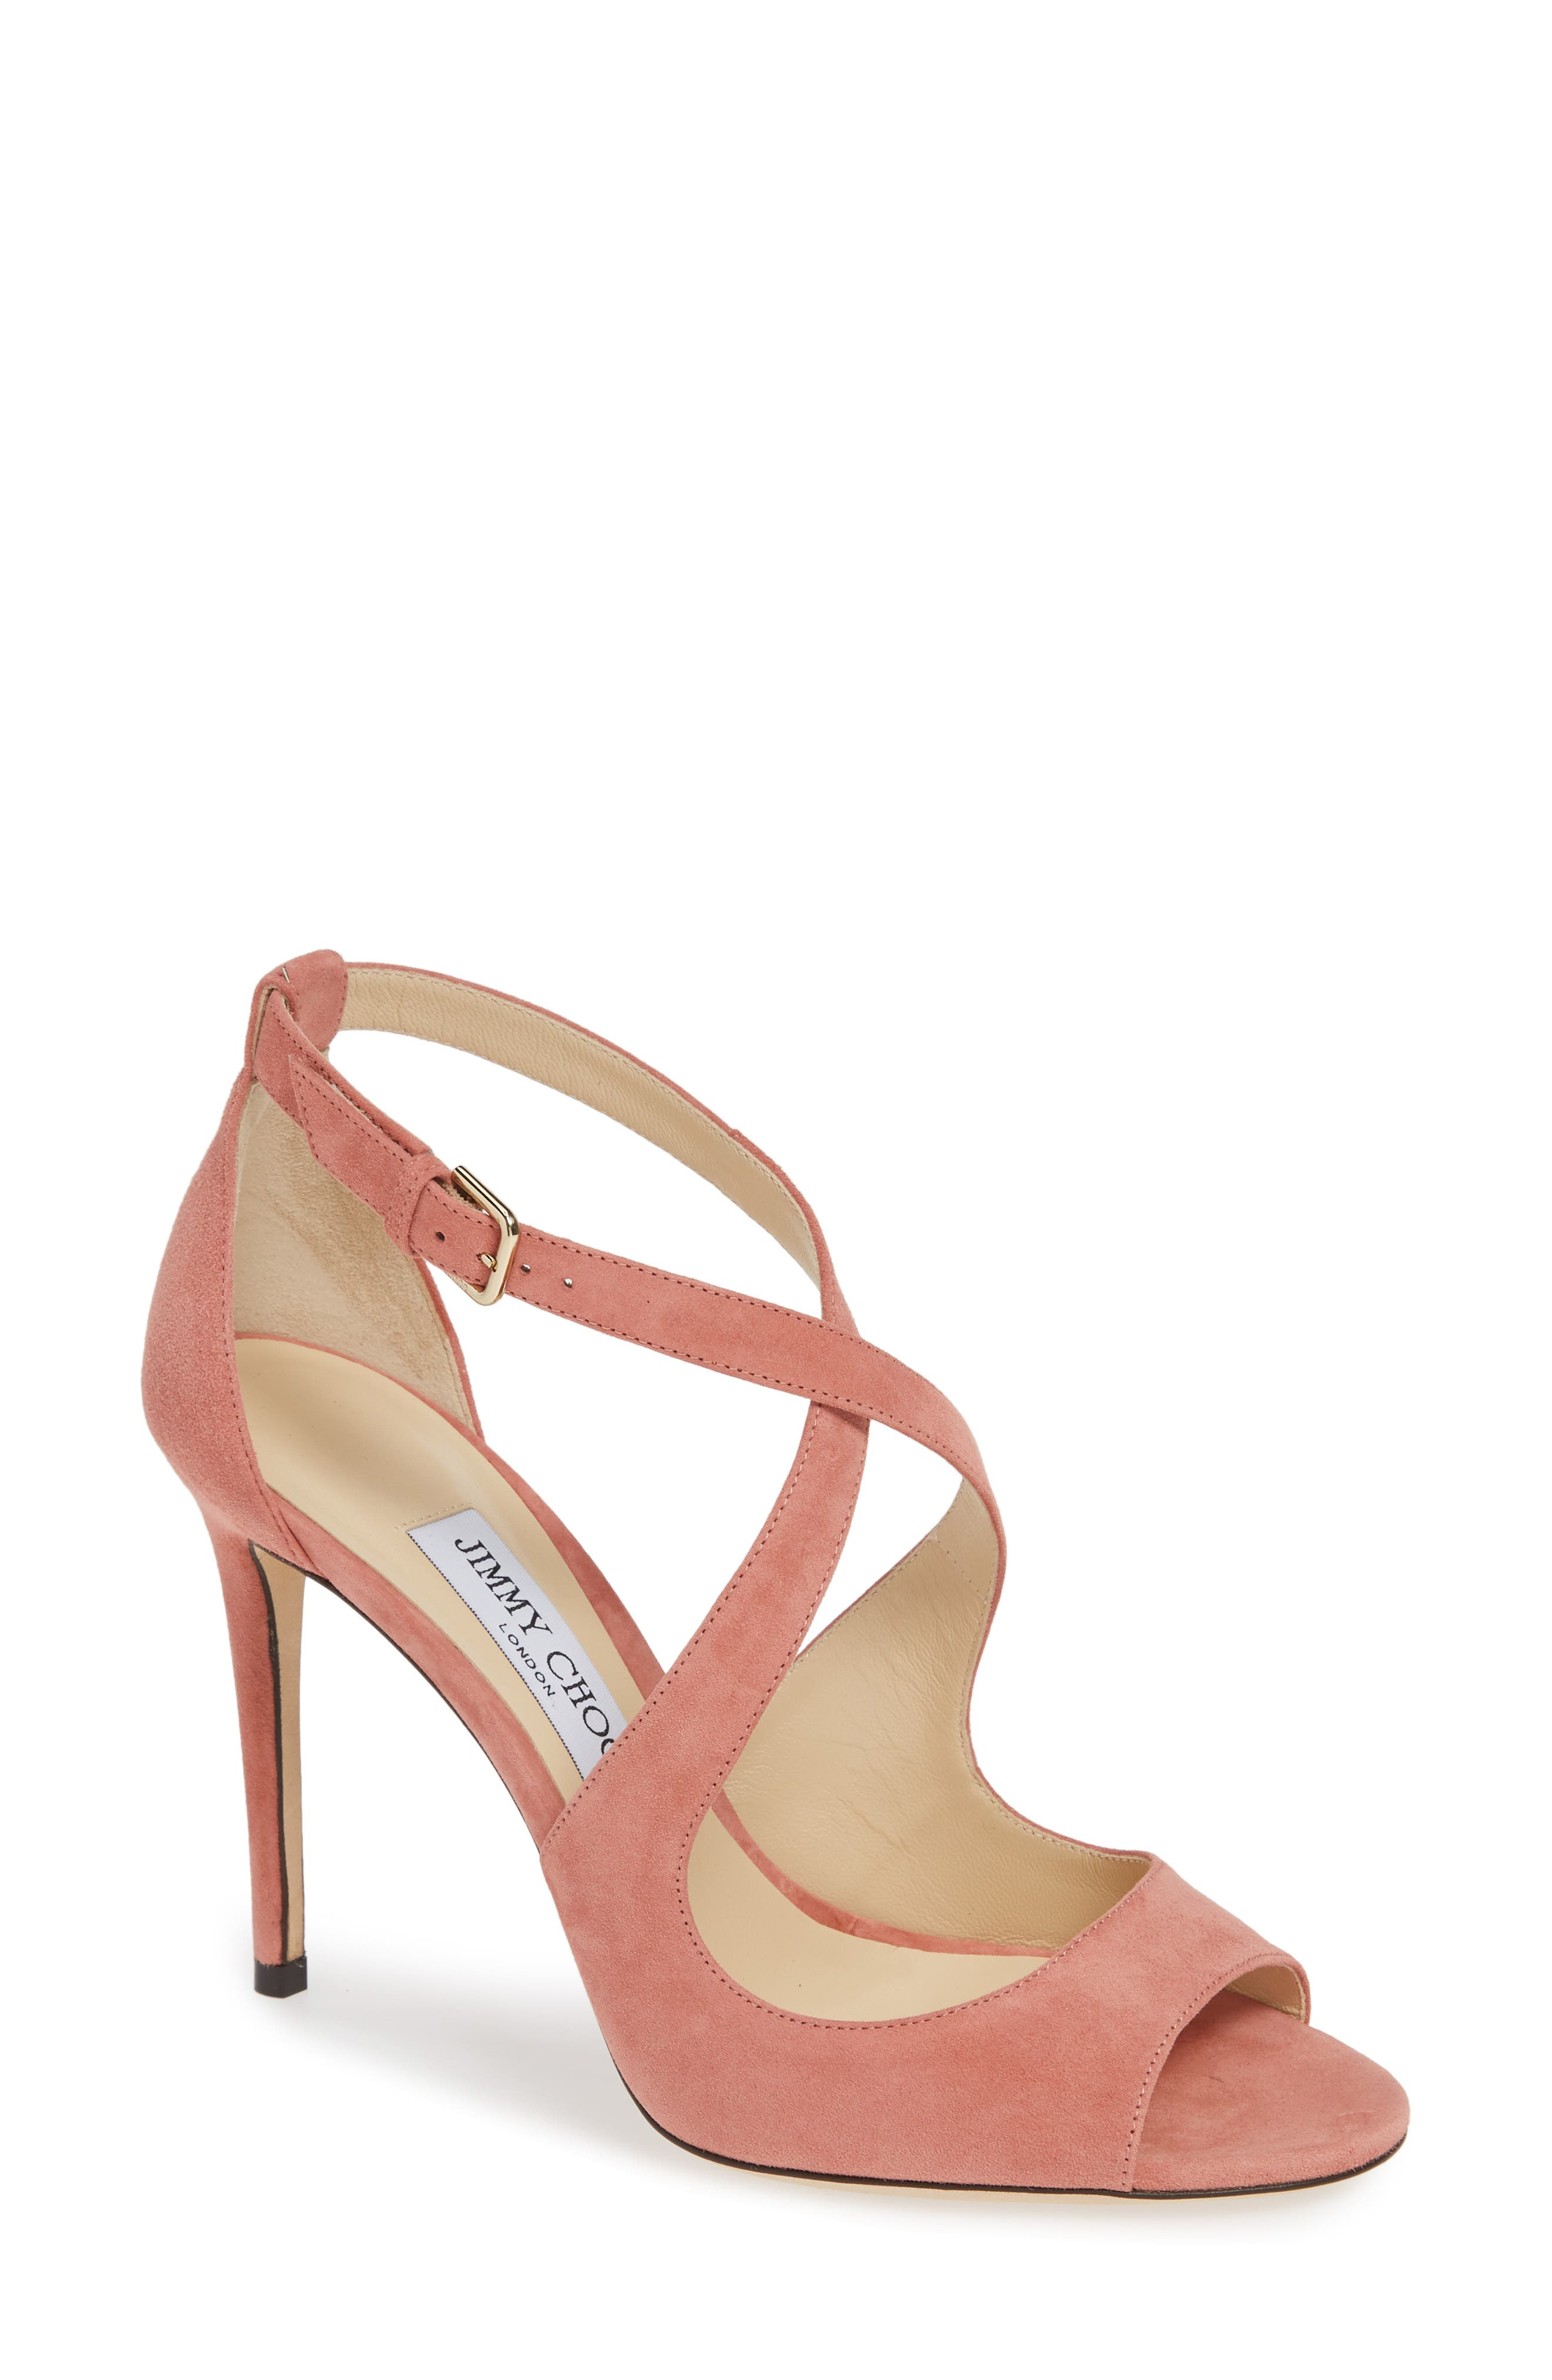 Emily Peep Toe Sandal,                         Main,                         color, ROSEWOOD SUEDE